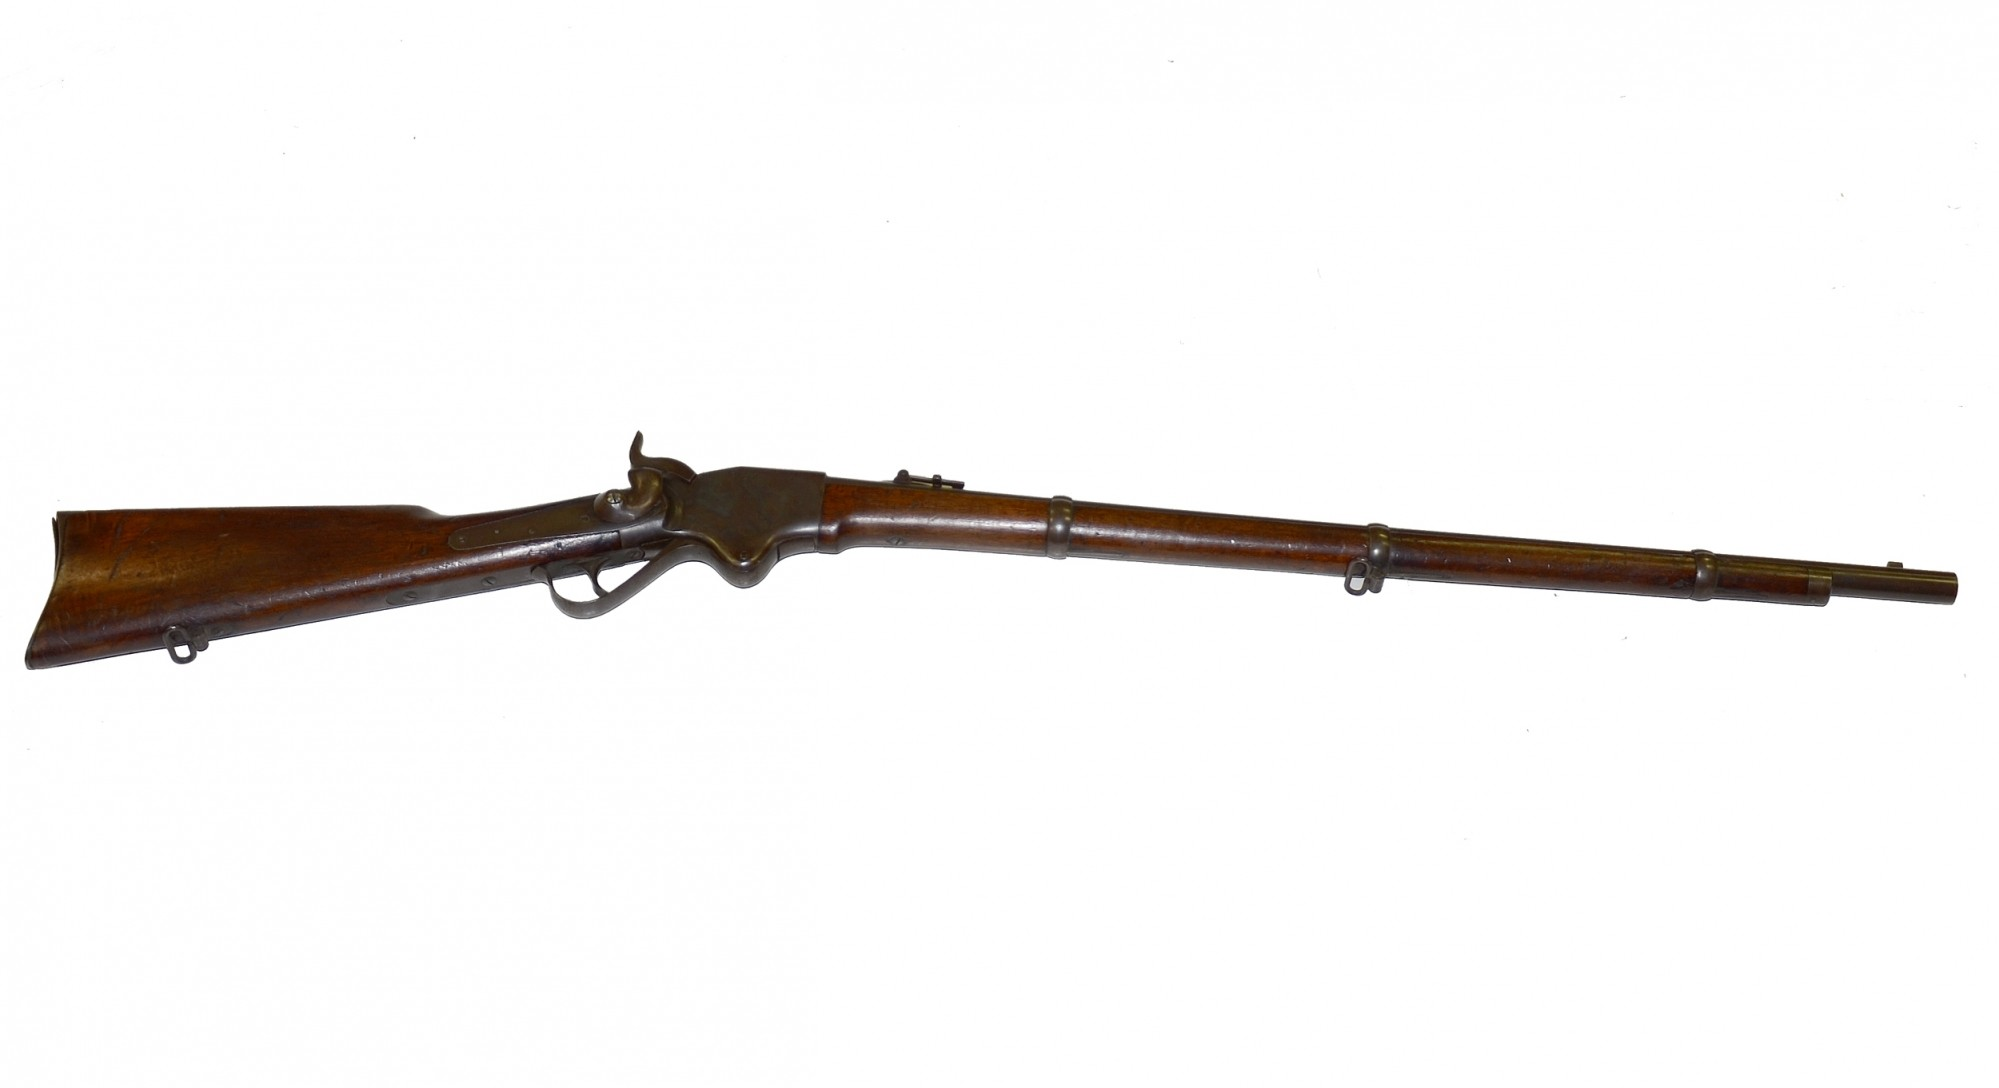 CIVIL WAR M1860 SPENCER REPEATING ARMY RIFLE